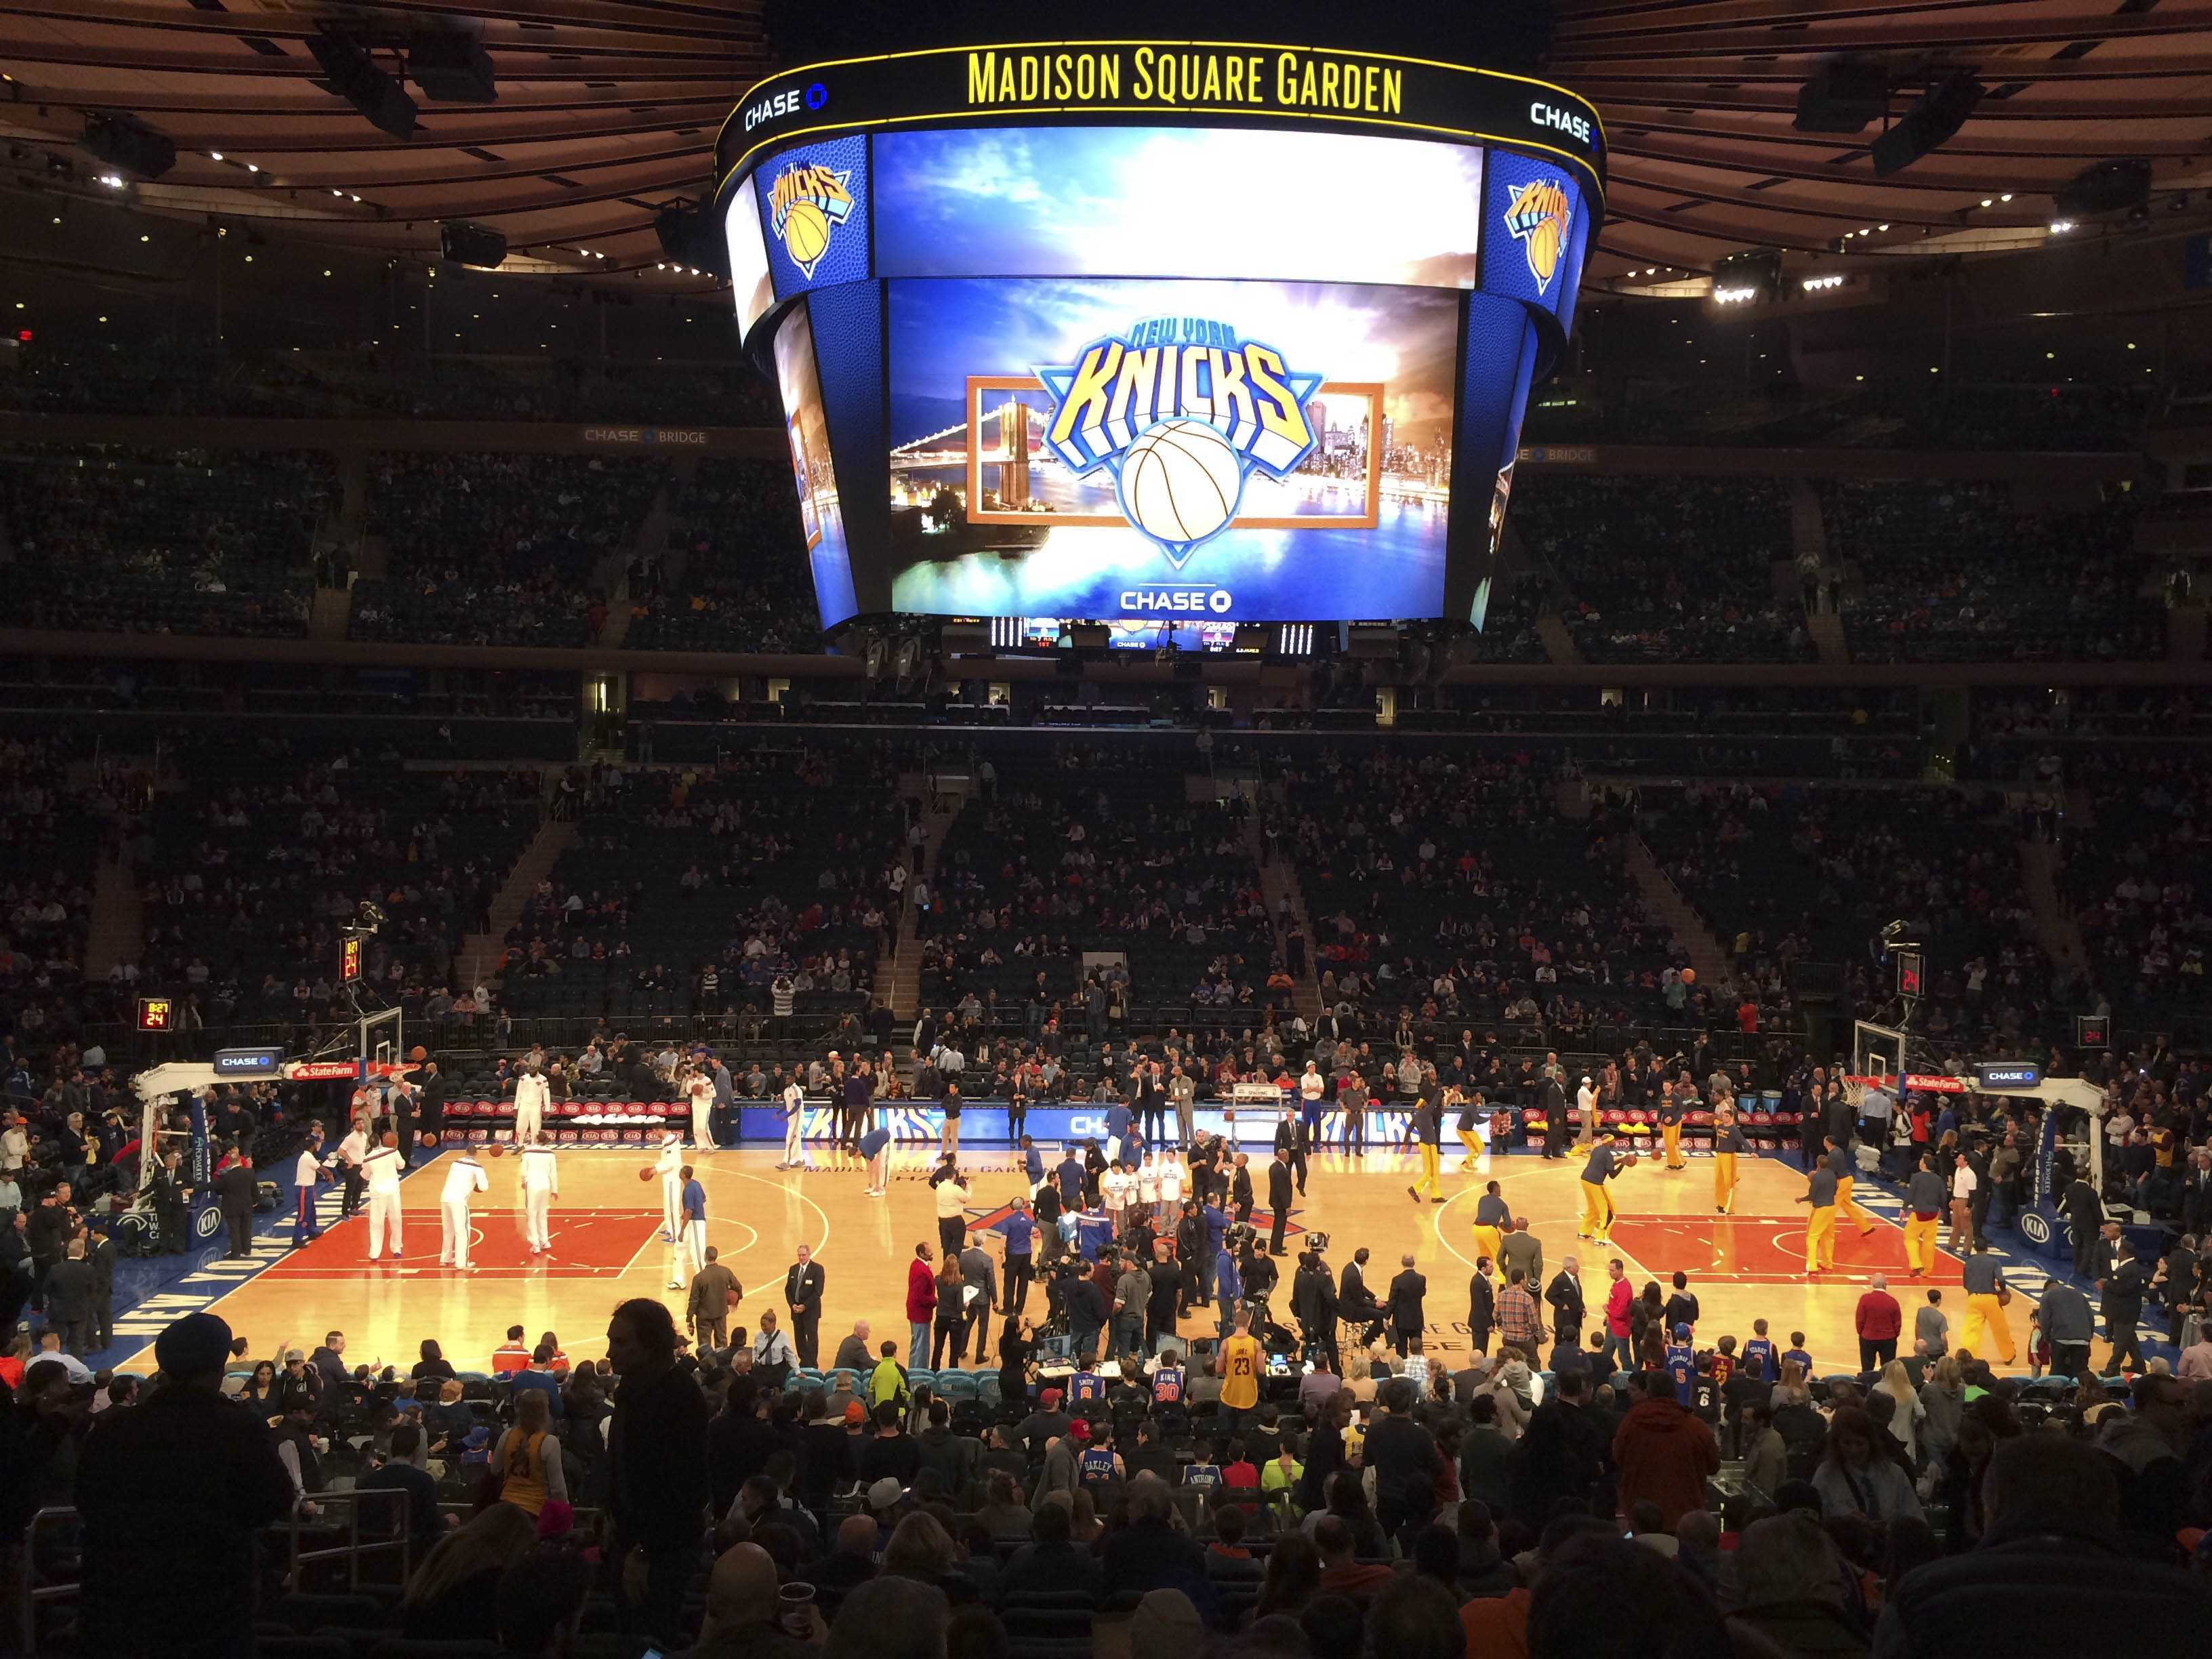 Attending a Knicks game is one of many fun and exciting events you can attend on the weekends while in New York.